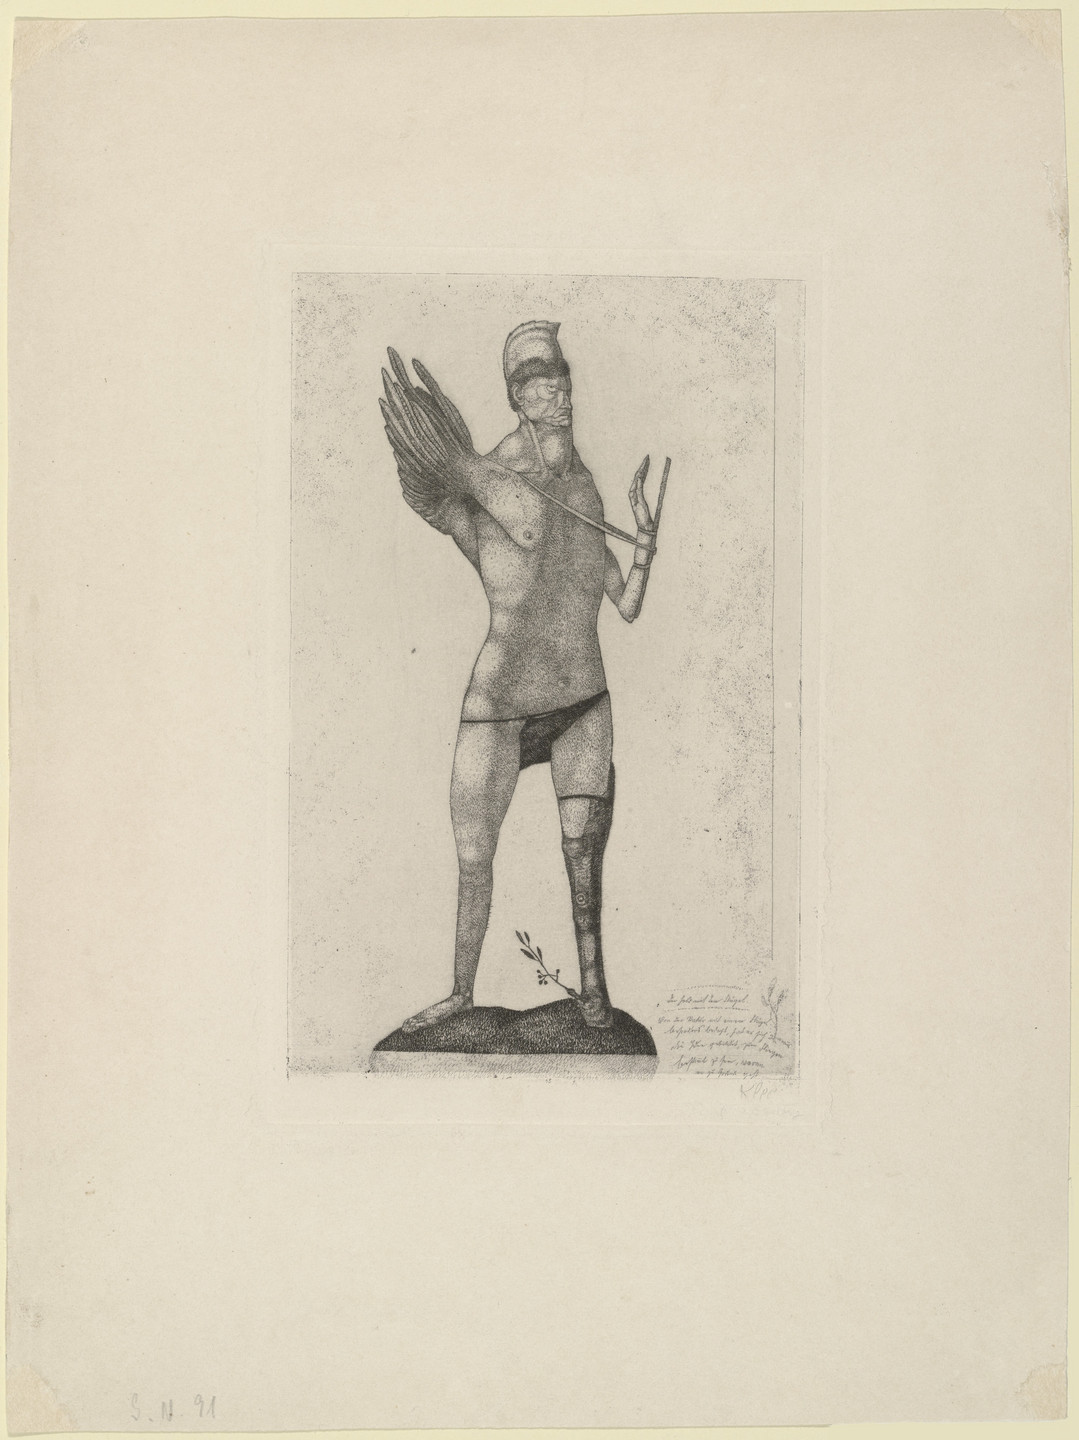 Paul Klee. Der Held mit dem Flügel (The Hero with the Wing) from the series Inventions (Inventionen). 1905